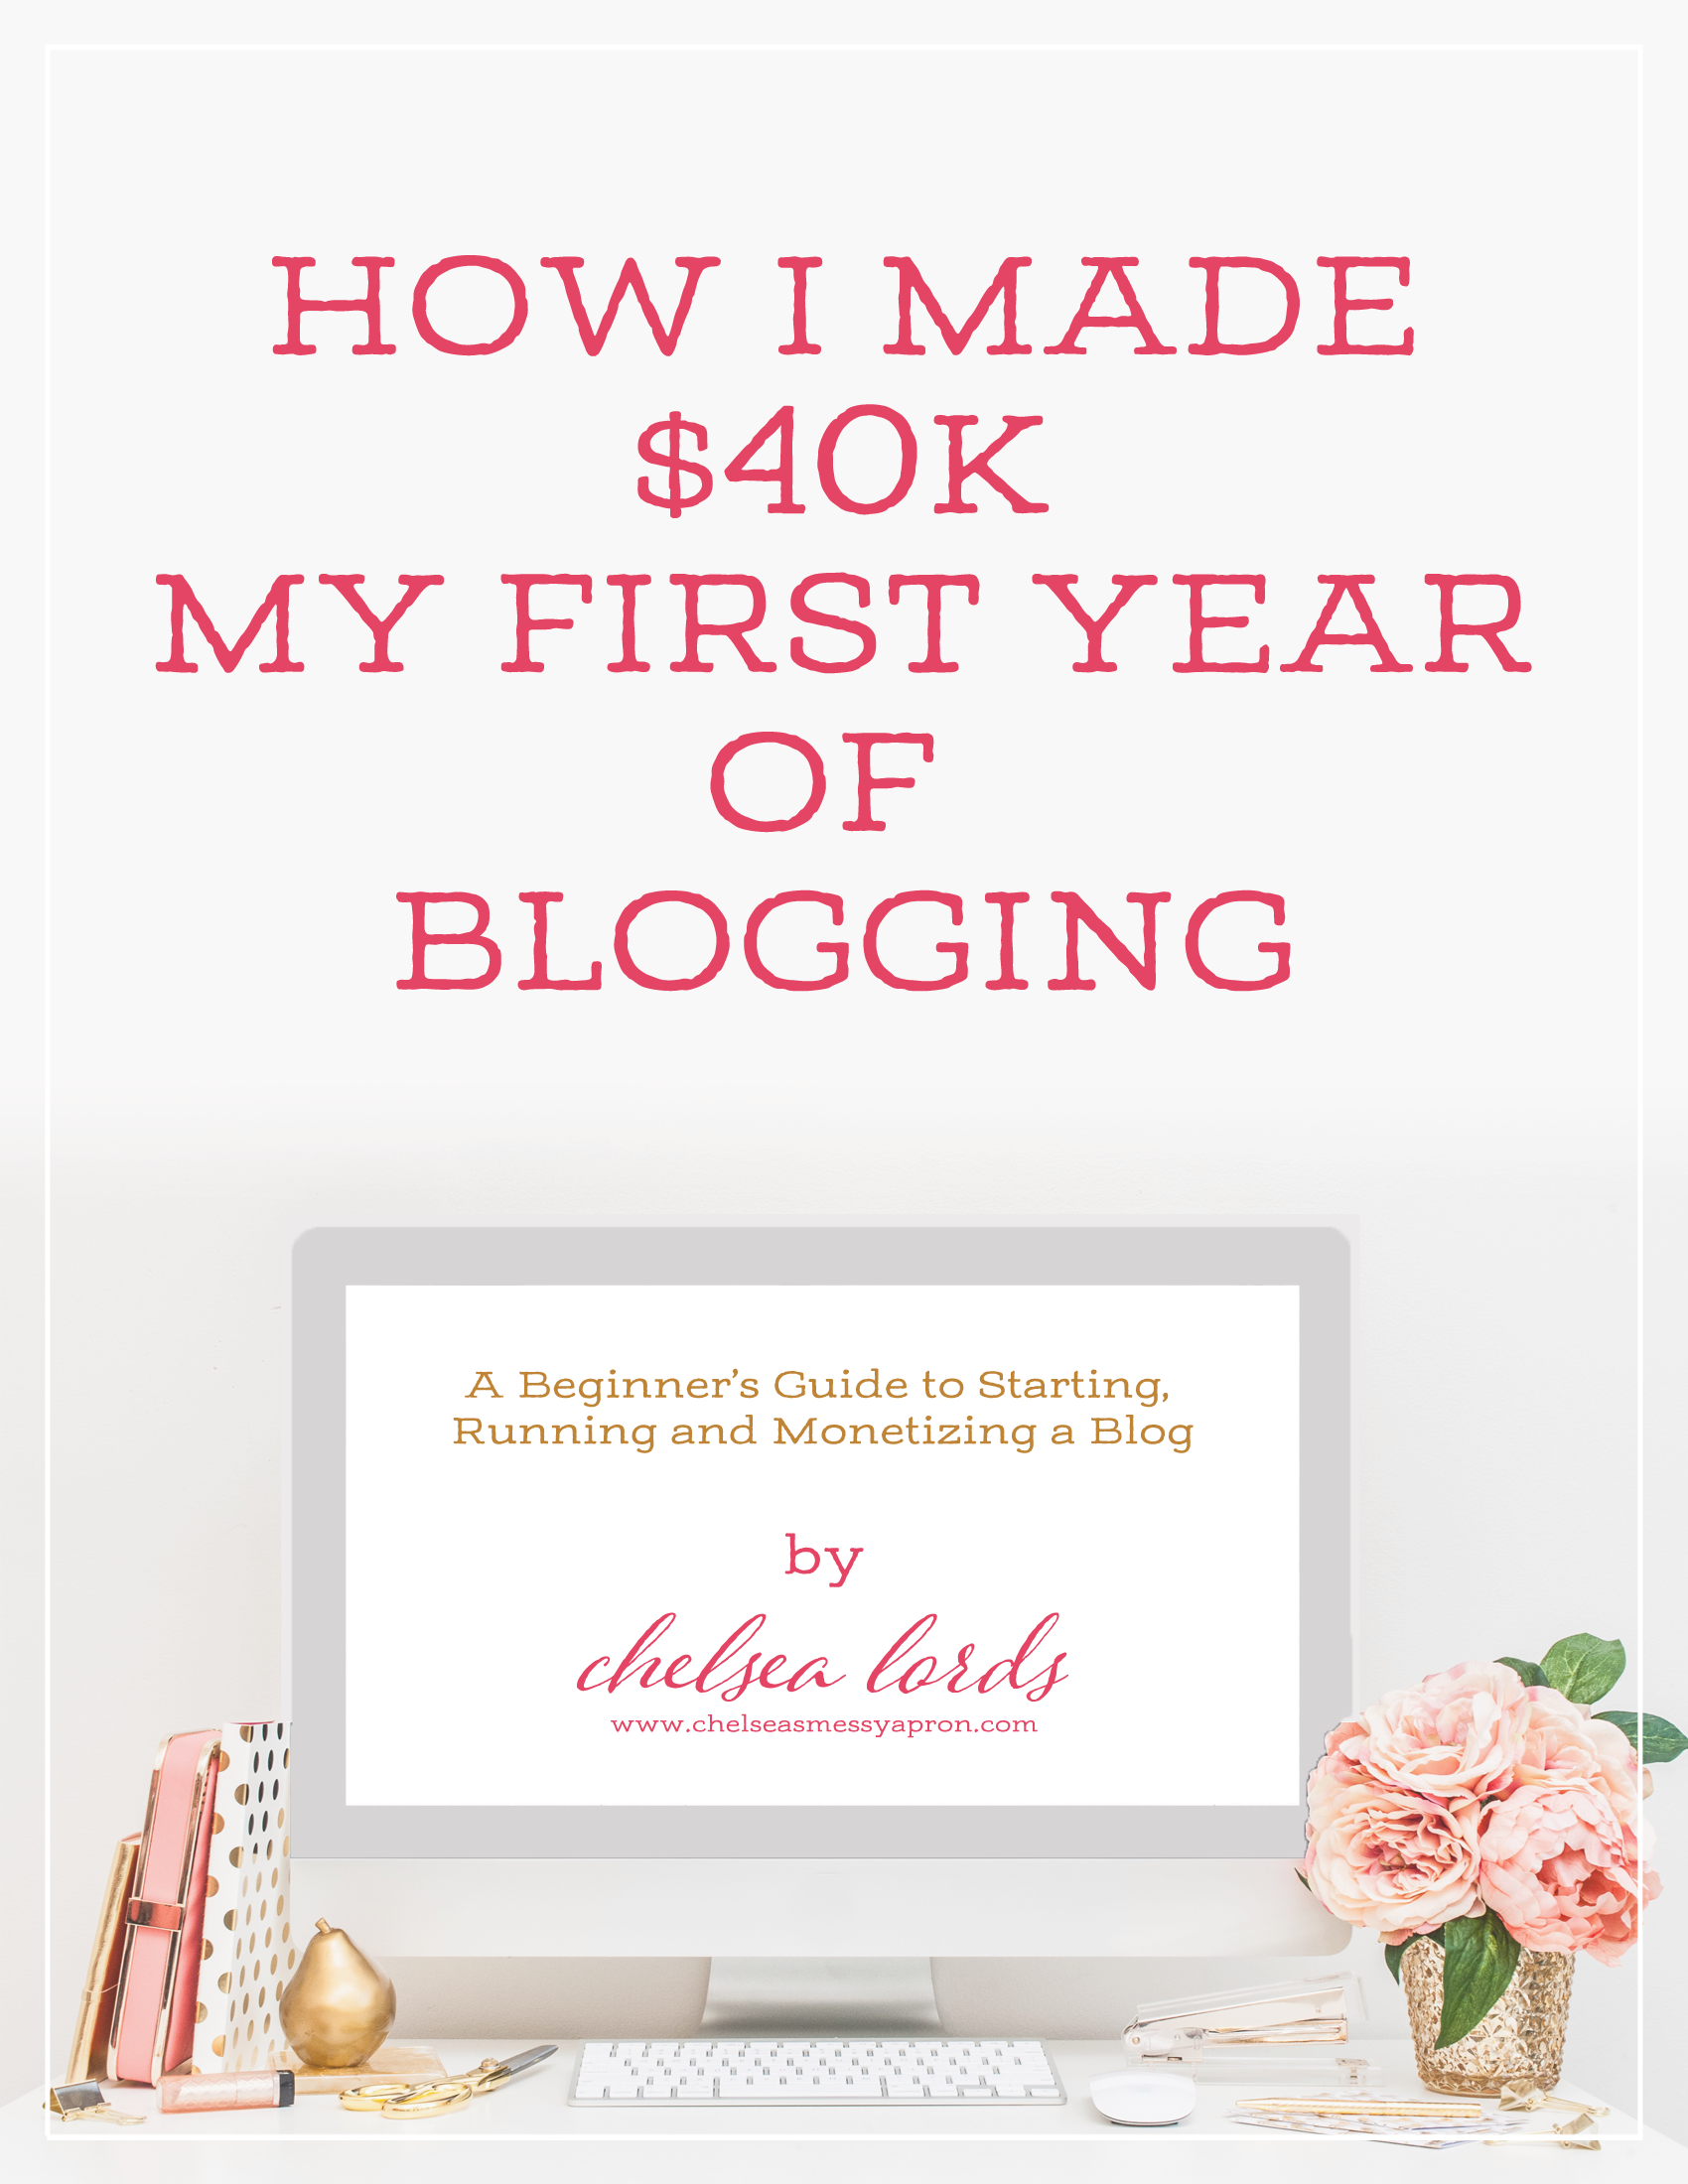 How To Monetize A Food Blog Make Money Blogging Book  Blogging On The Side  Ebook How I Made $40k My First Year Of Blogging Ebook